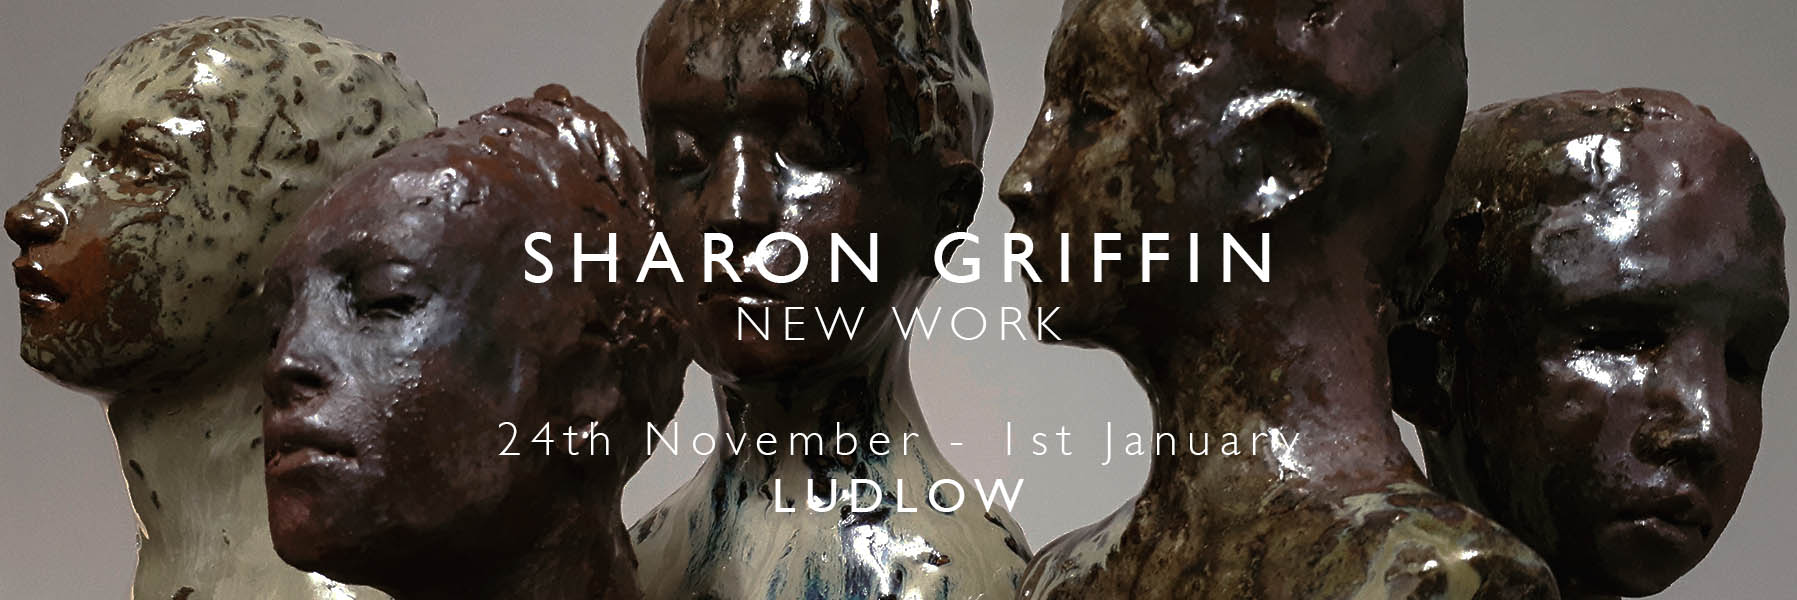 sharon griffin nov18